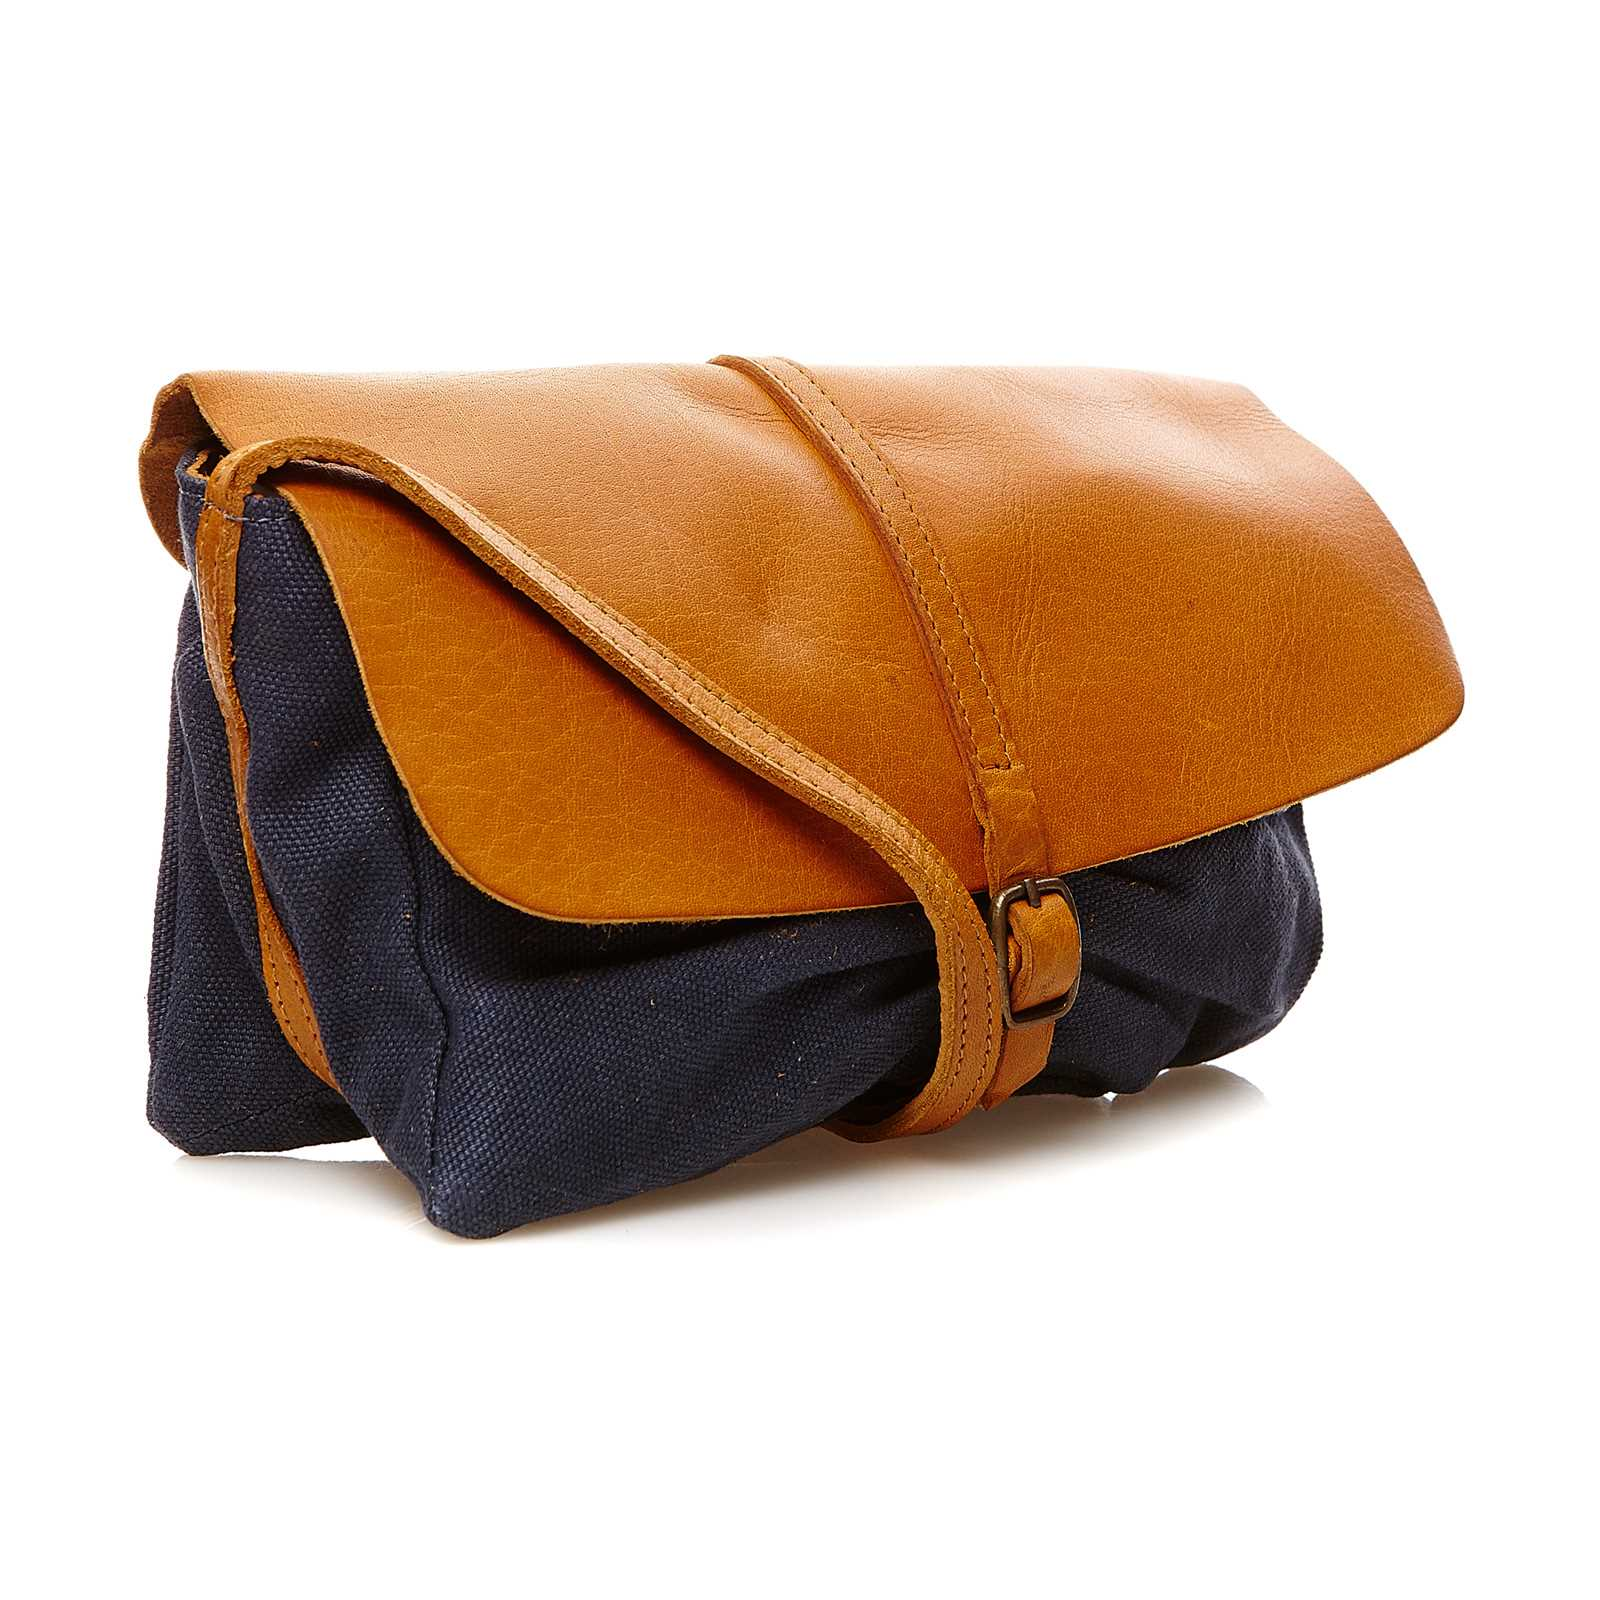 Pepe jeans Sac DARBY Pepe jeans solde